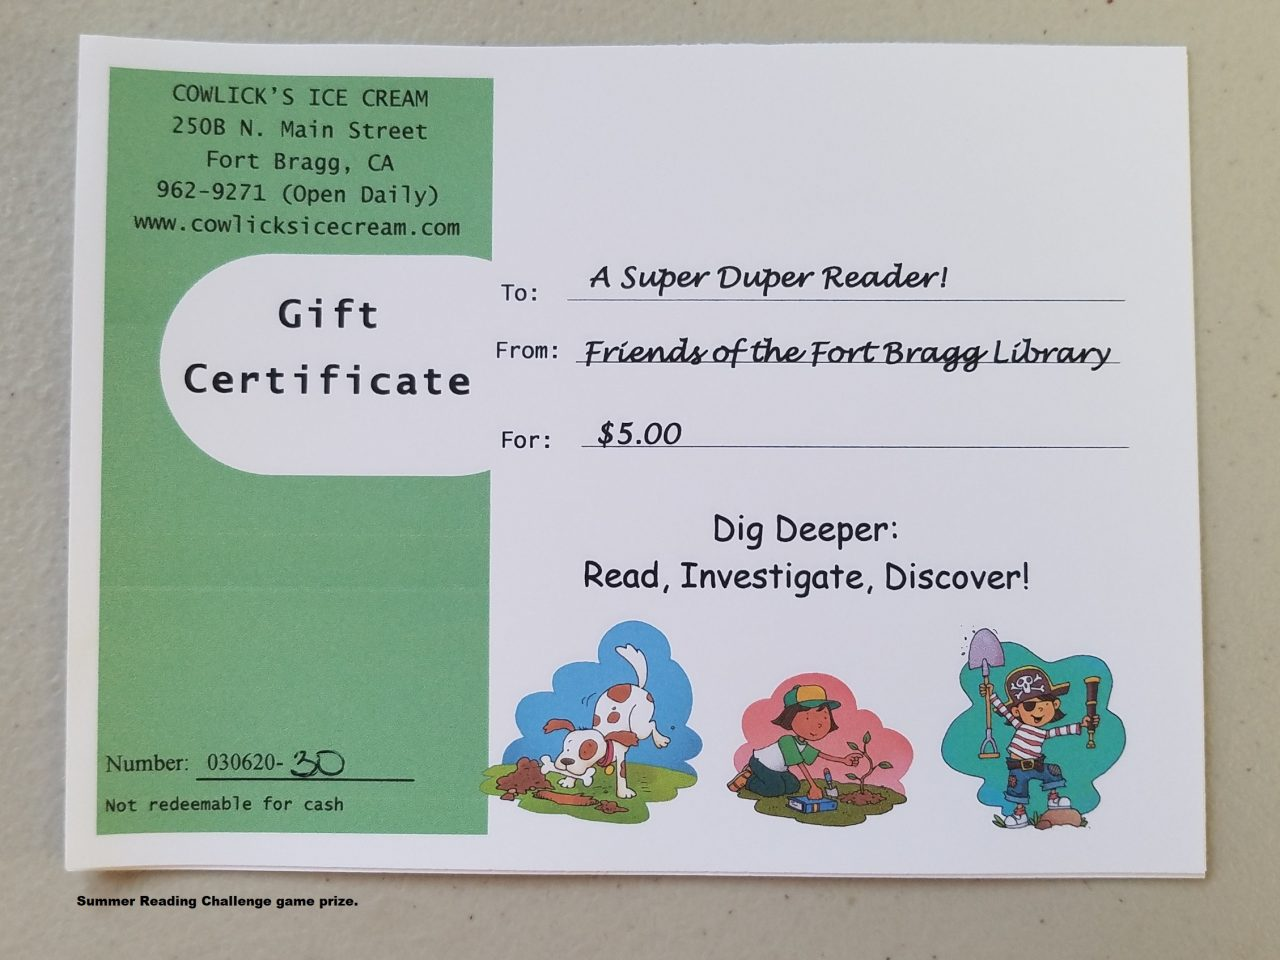 Summer Reading Challenge game prize.